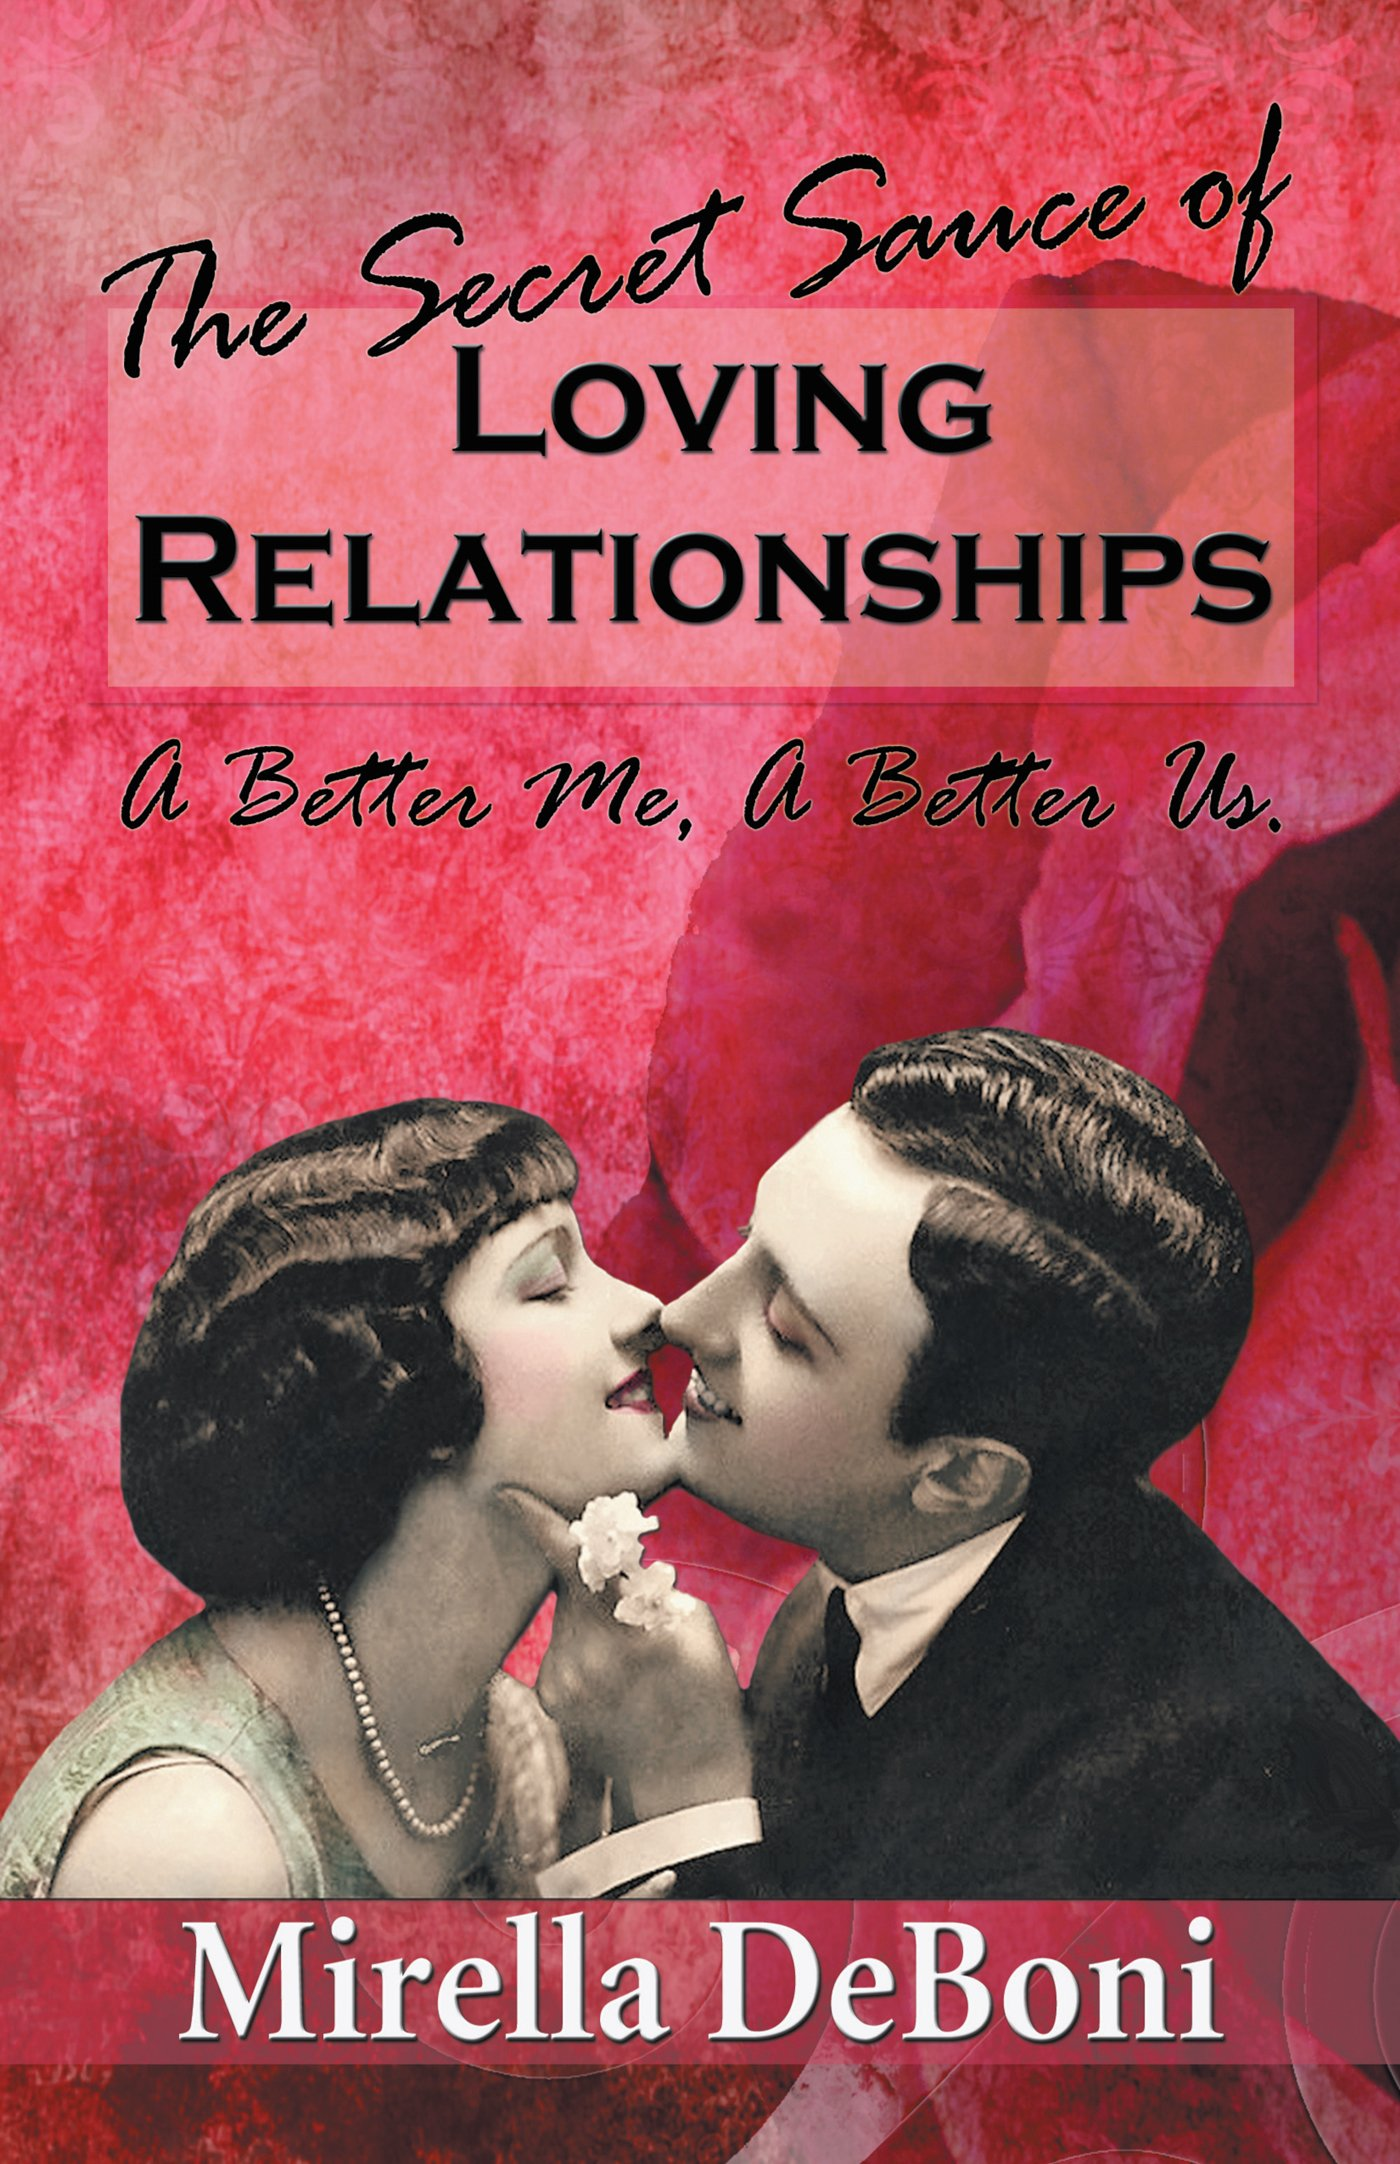 Image OfThe Secret Sauce Of Loving Relationships: A Better Me, A Better Us. (English Edition)